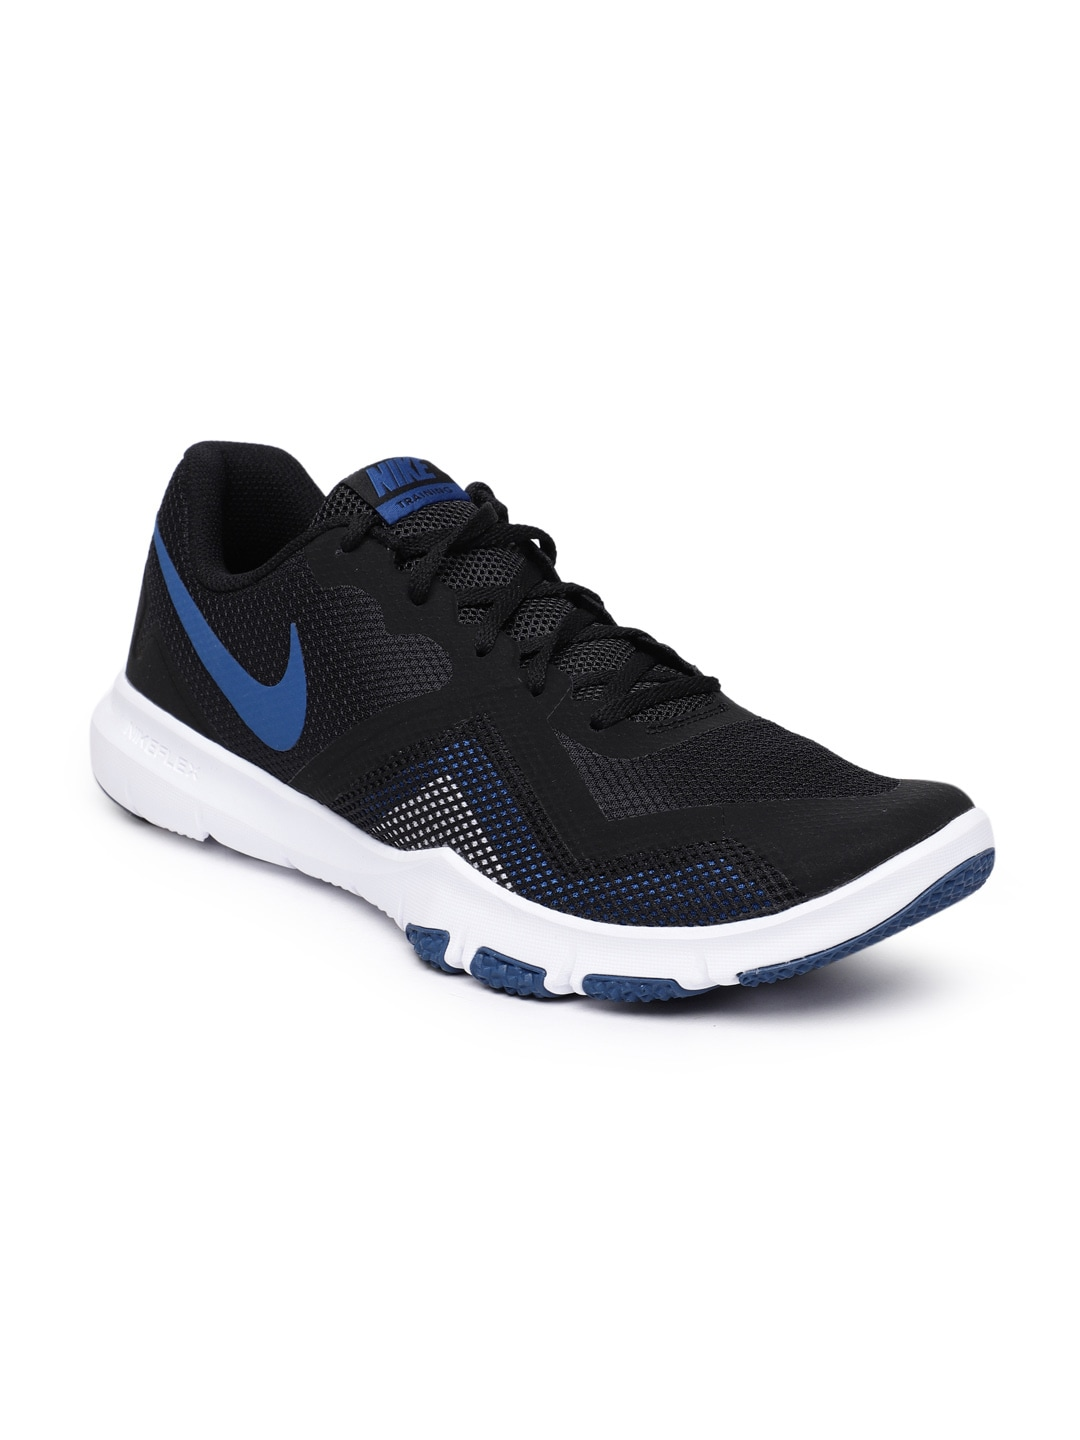 fb15b53f8f9ae Nike Sport Shoe - Buy Nike Sport Shoes At Best Price Online